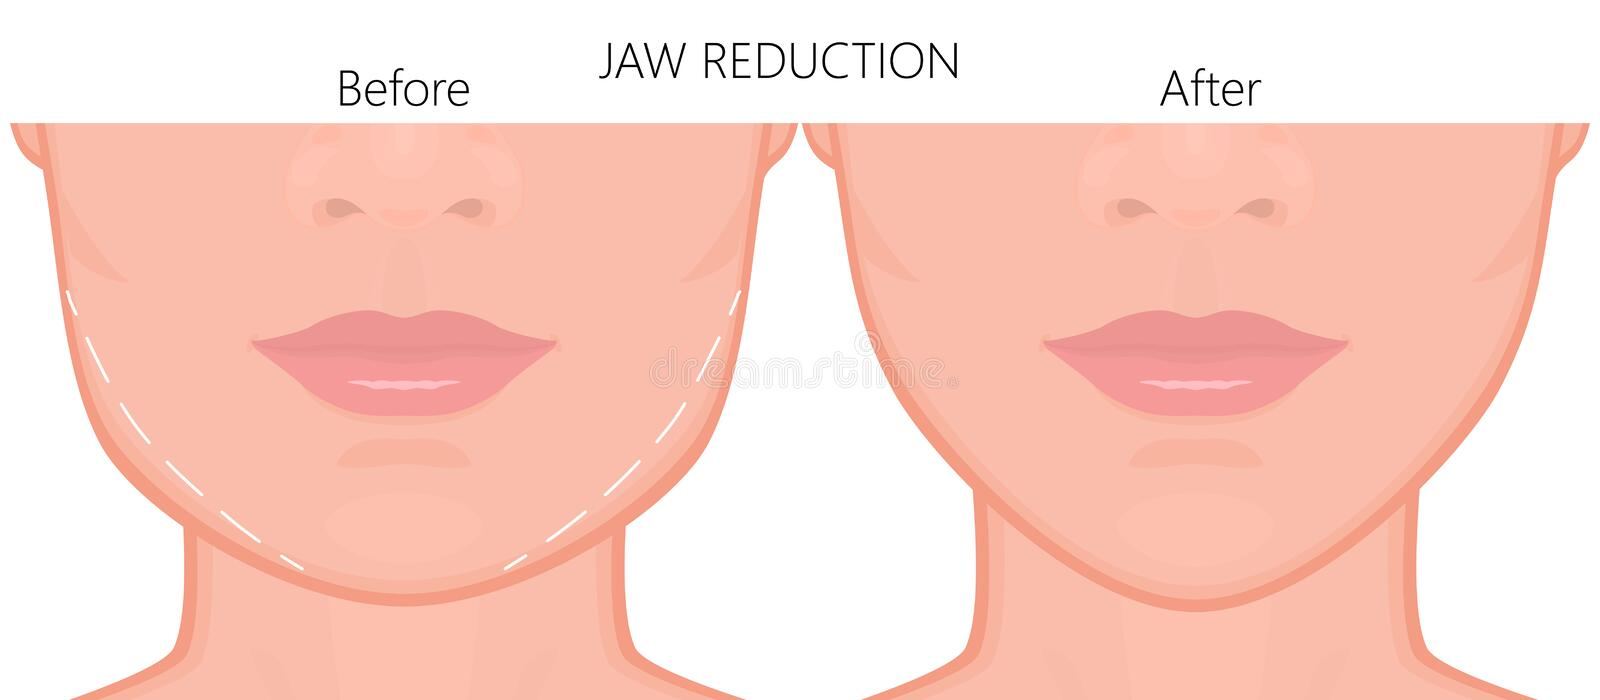 Fin de chirurgie de réduction de front_Jaw de visage vers le haut de 2 illustration libre de droits